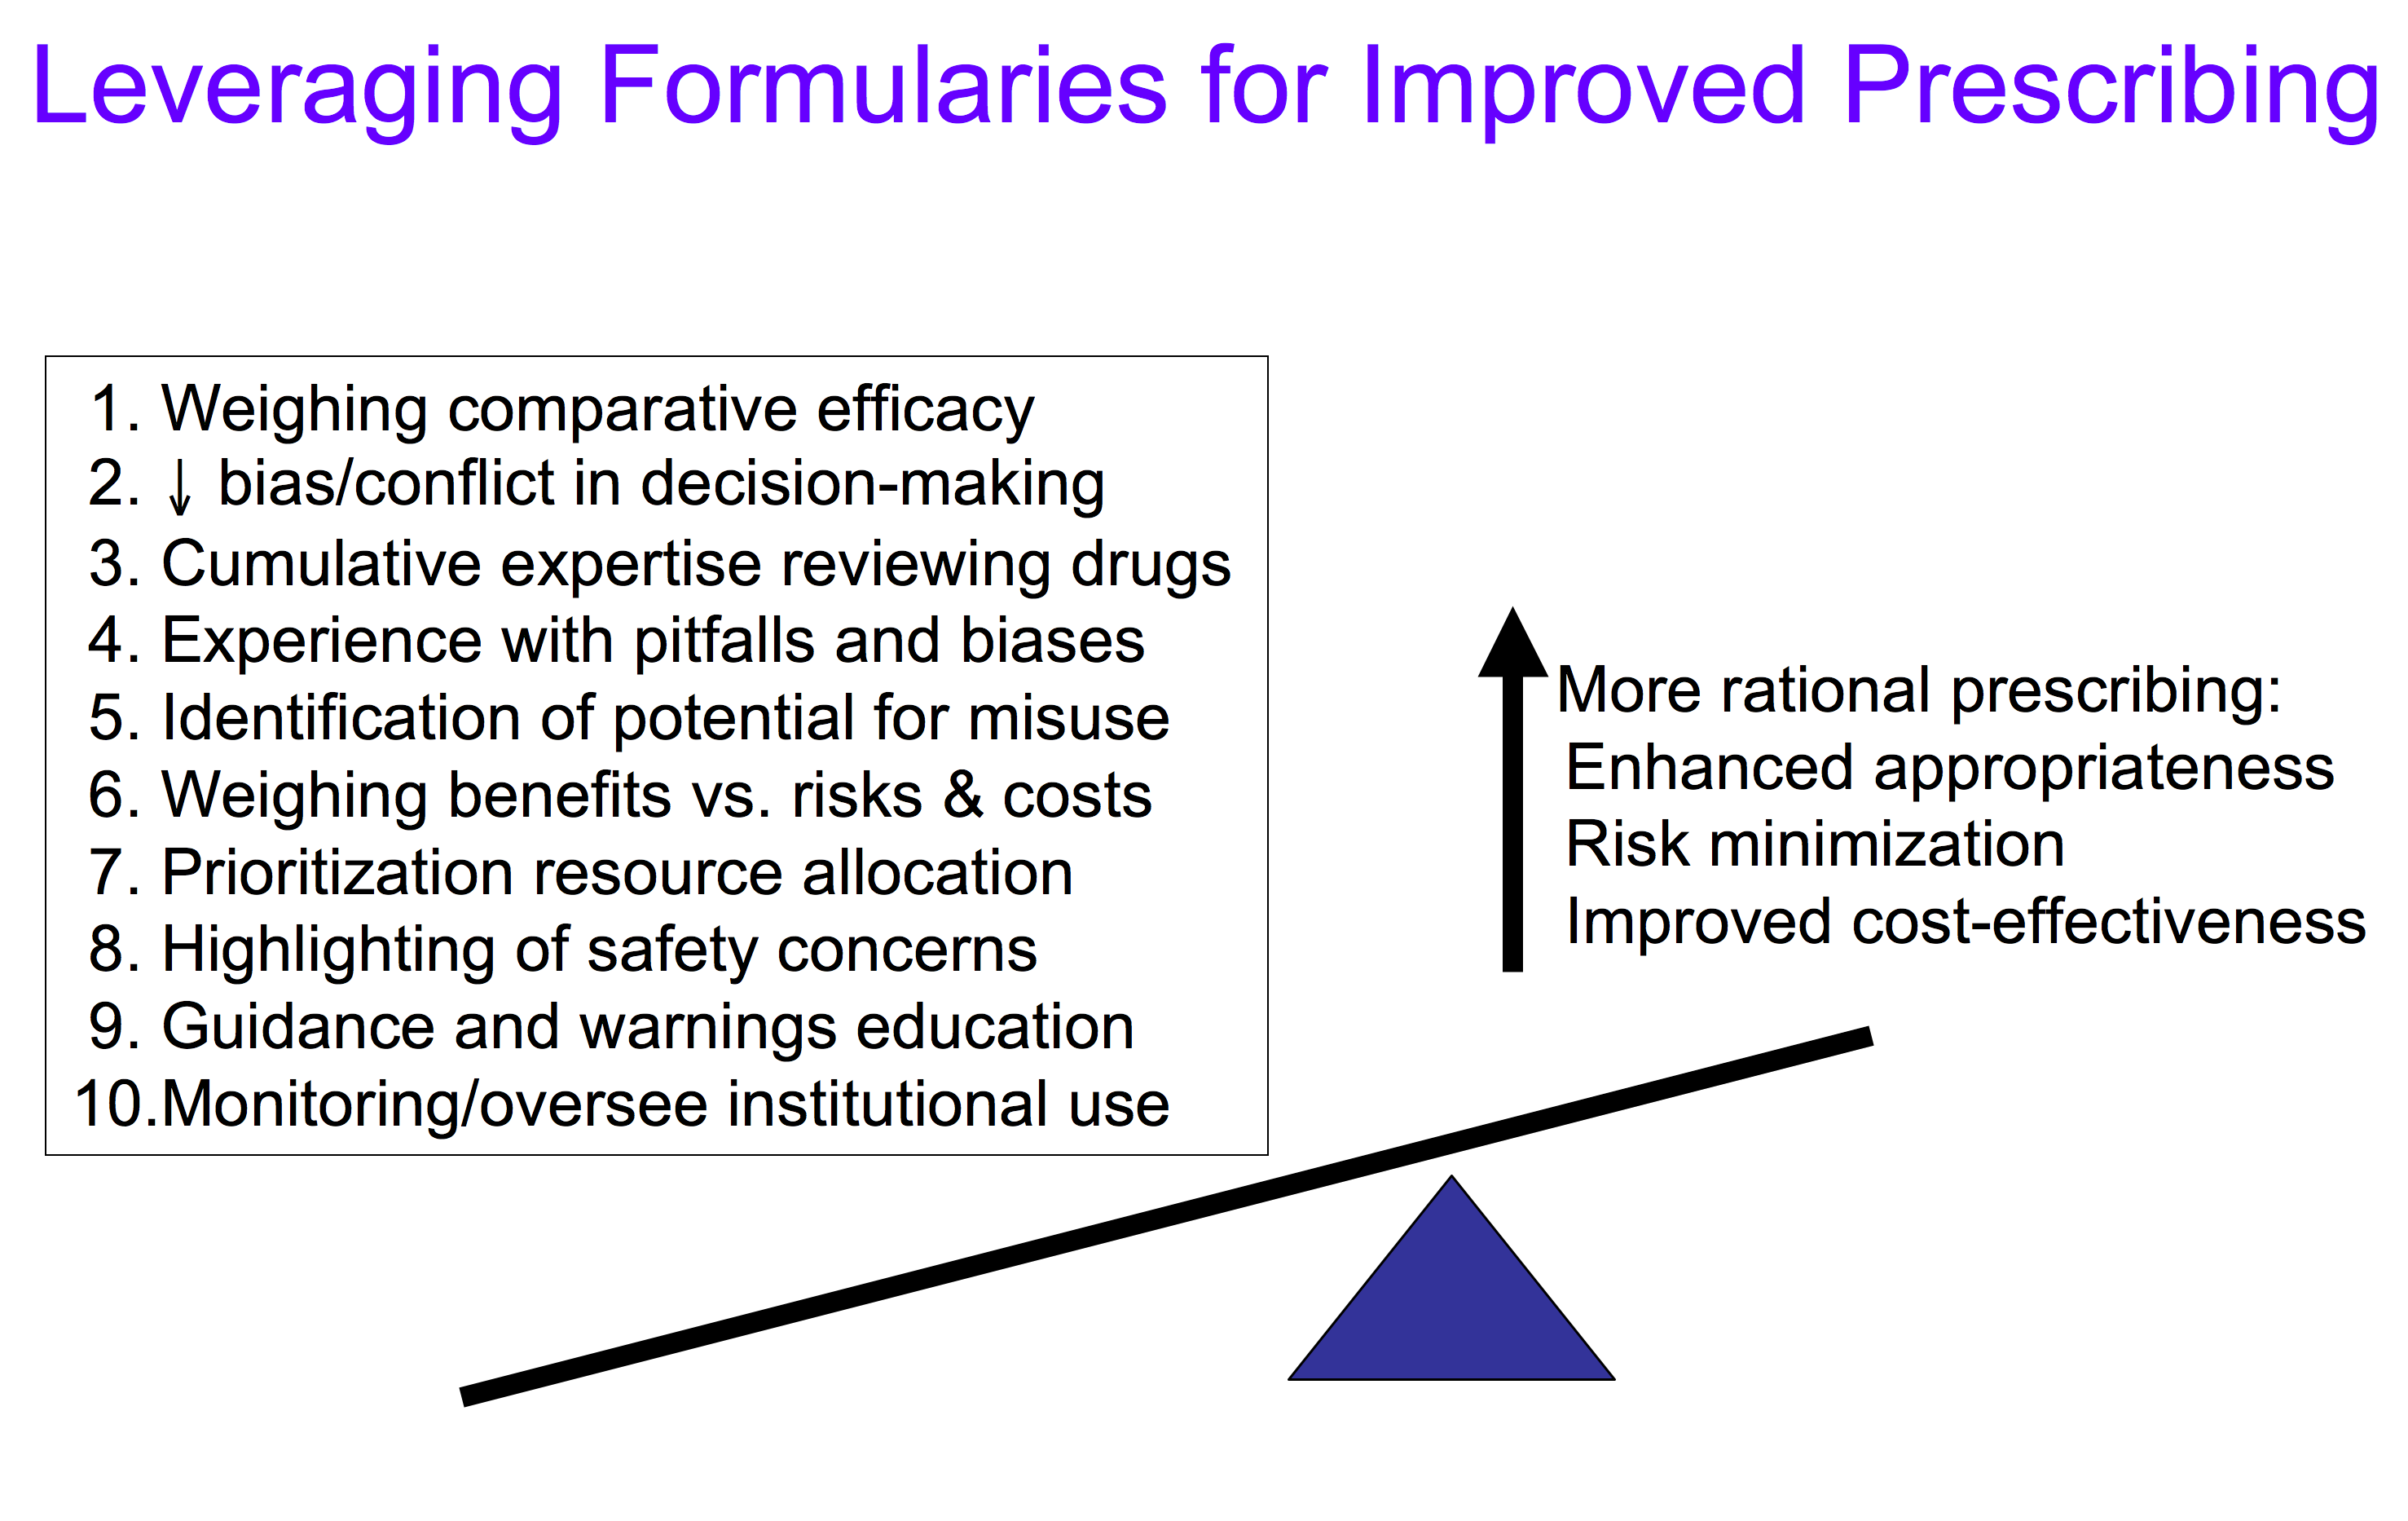 Leveraging formularies for improved prescribing.